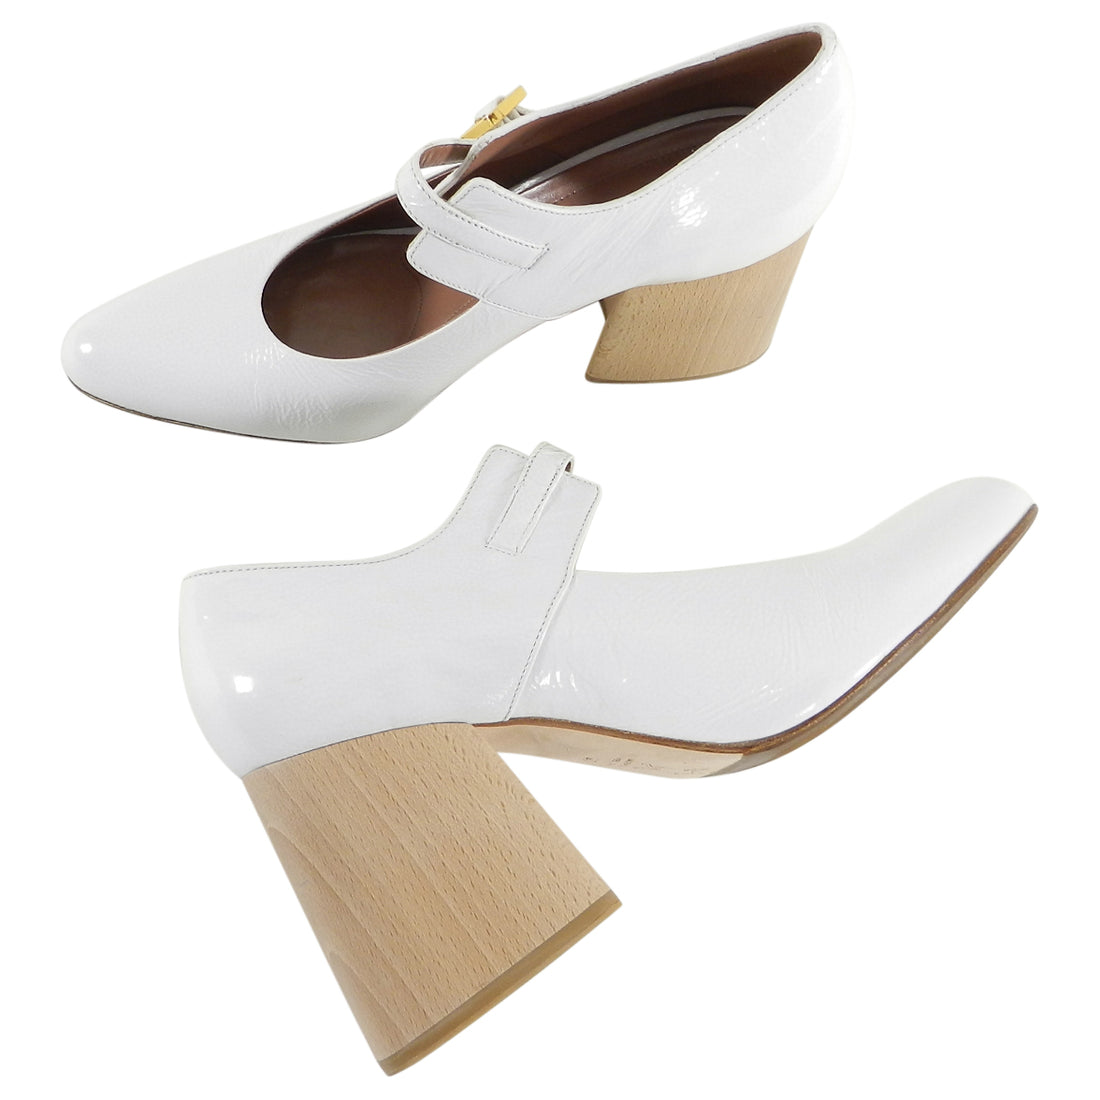 Marni White Patent Mary Jane Shoes with Wood Heel.  From the pre-fall 2017 collection. Chunky lacquered wood heel, gold buckle.  Original retail $880 USD.  Grips added on bottom sole by previous owner. Excellent pre-owned condition.  Worn a few times.  Duster and box not included.